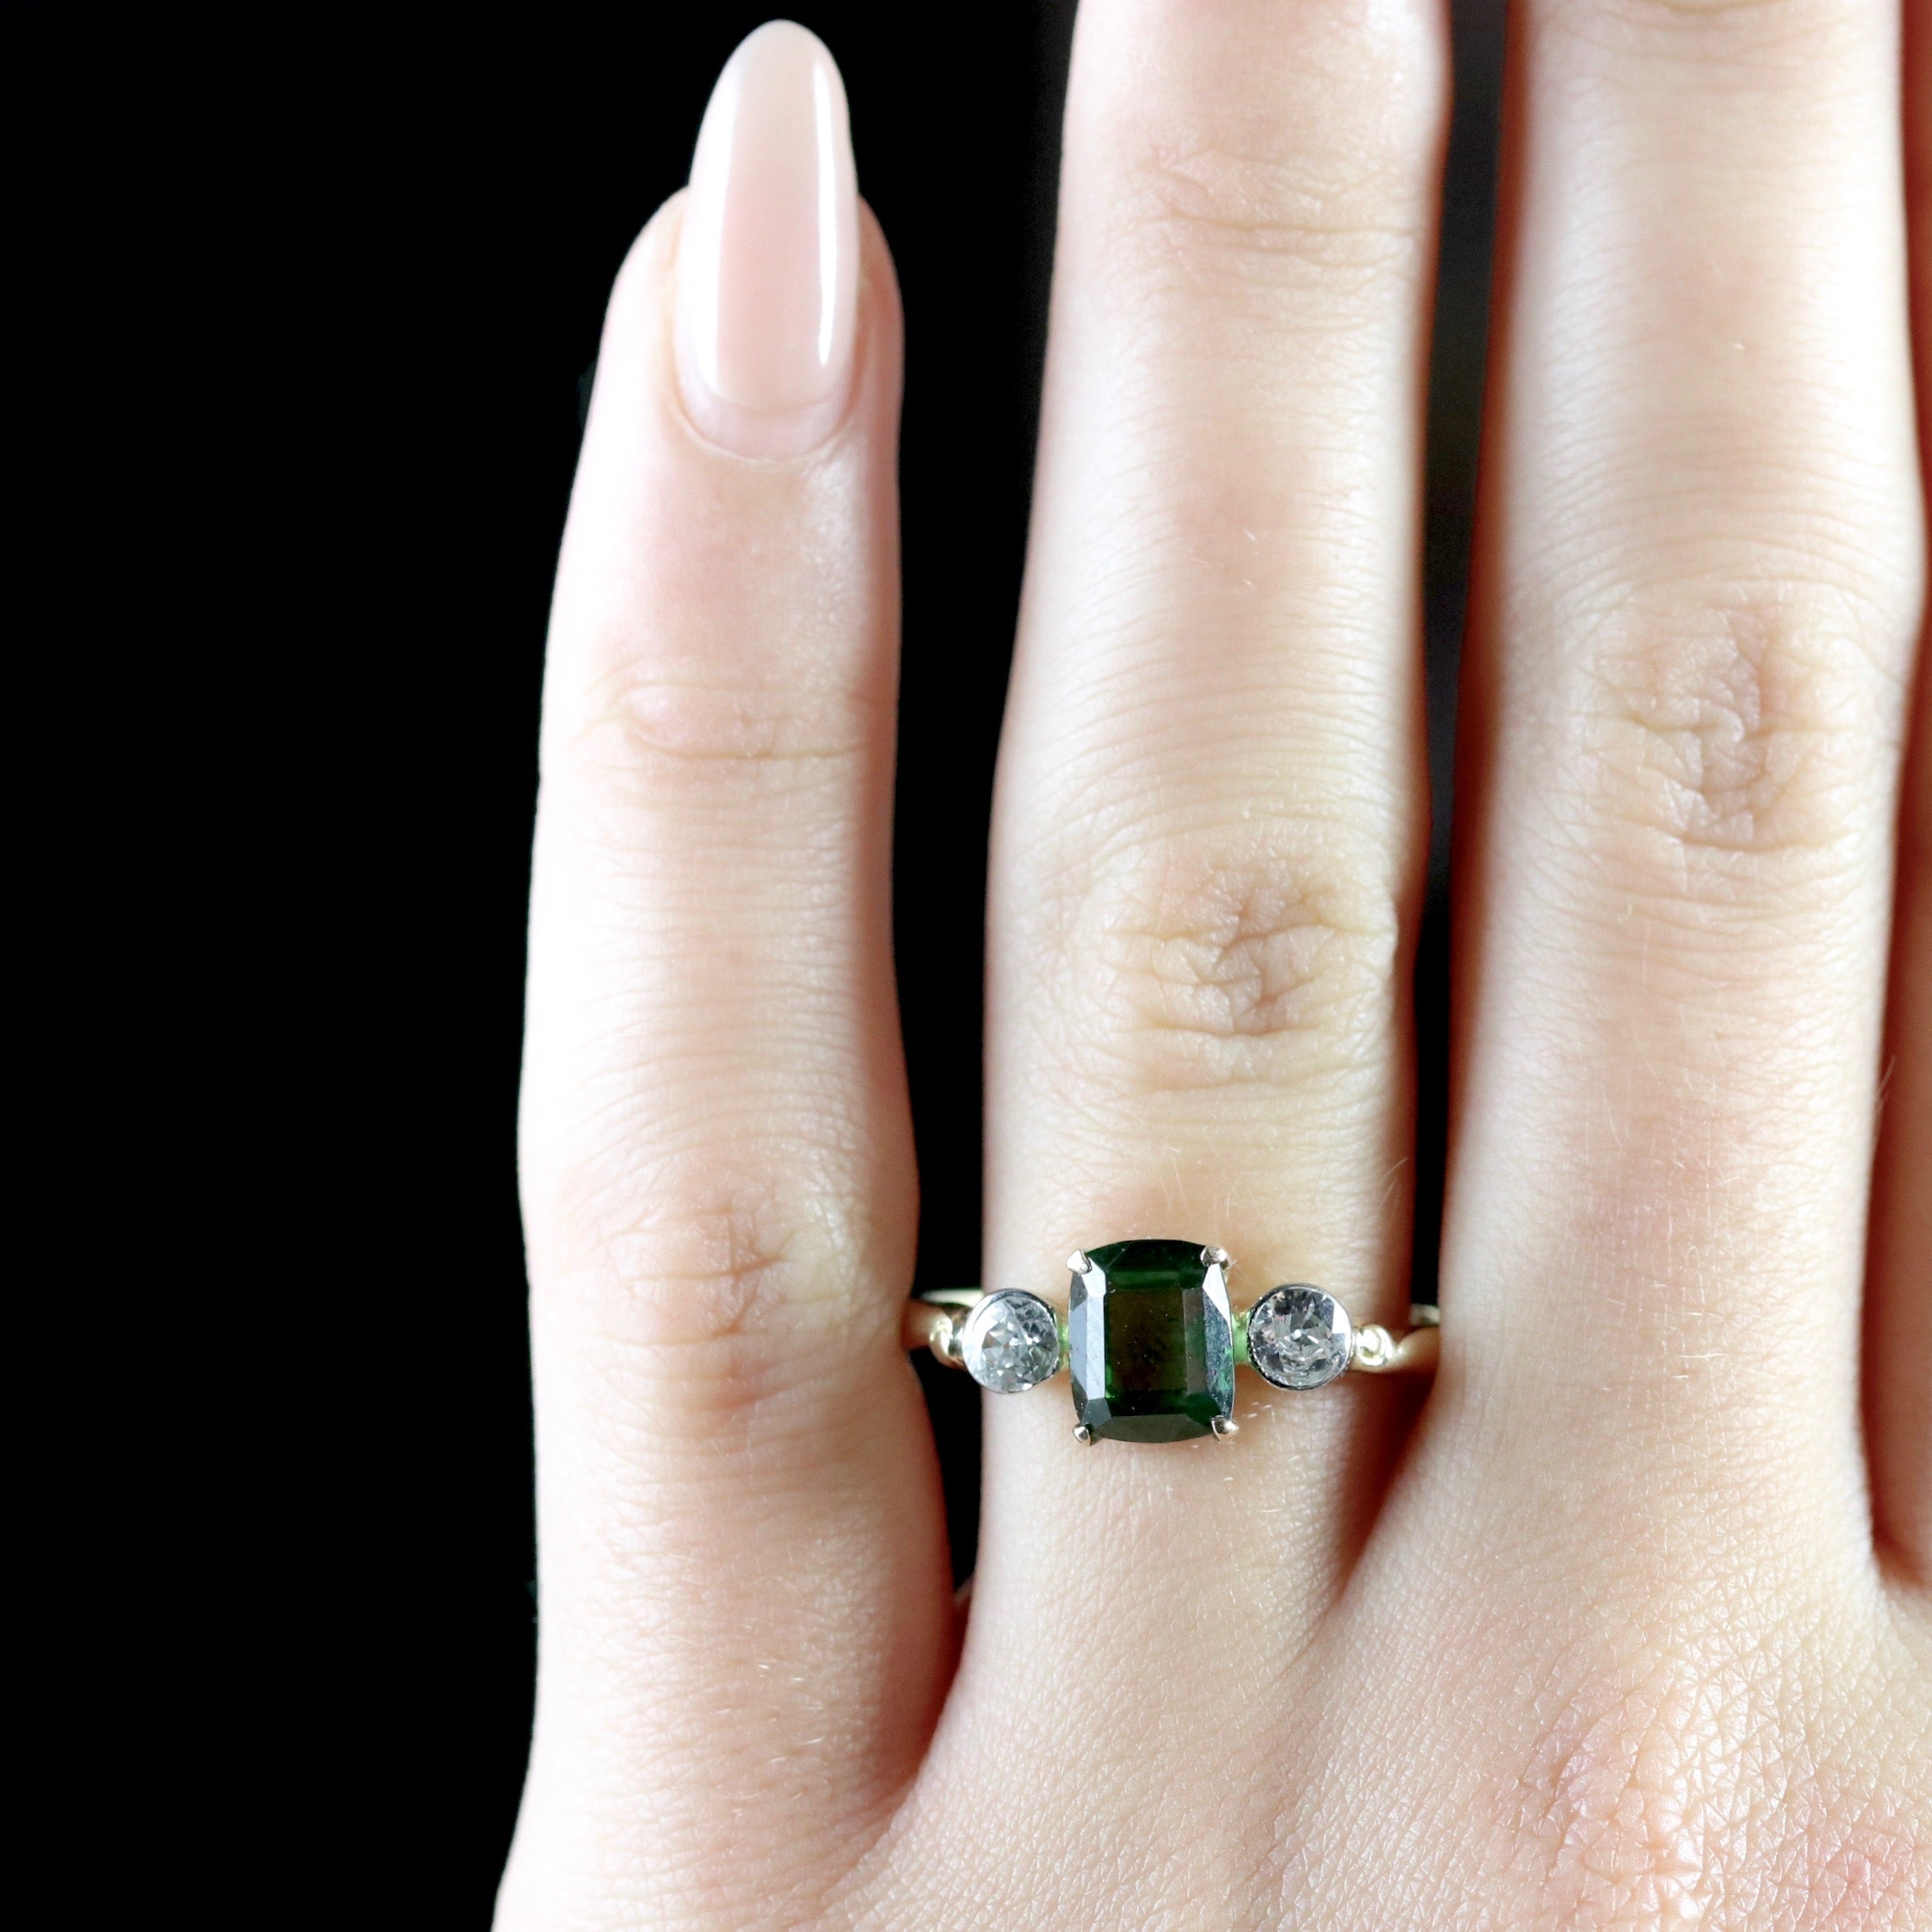 evans jewellery will ring contemporary rings green shop by tourmaline